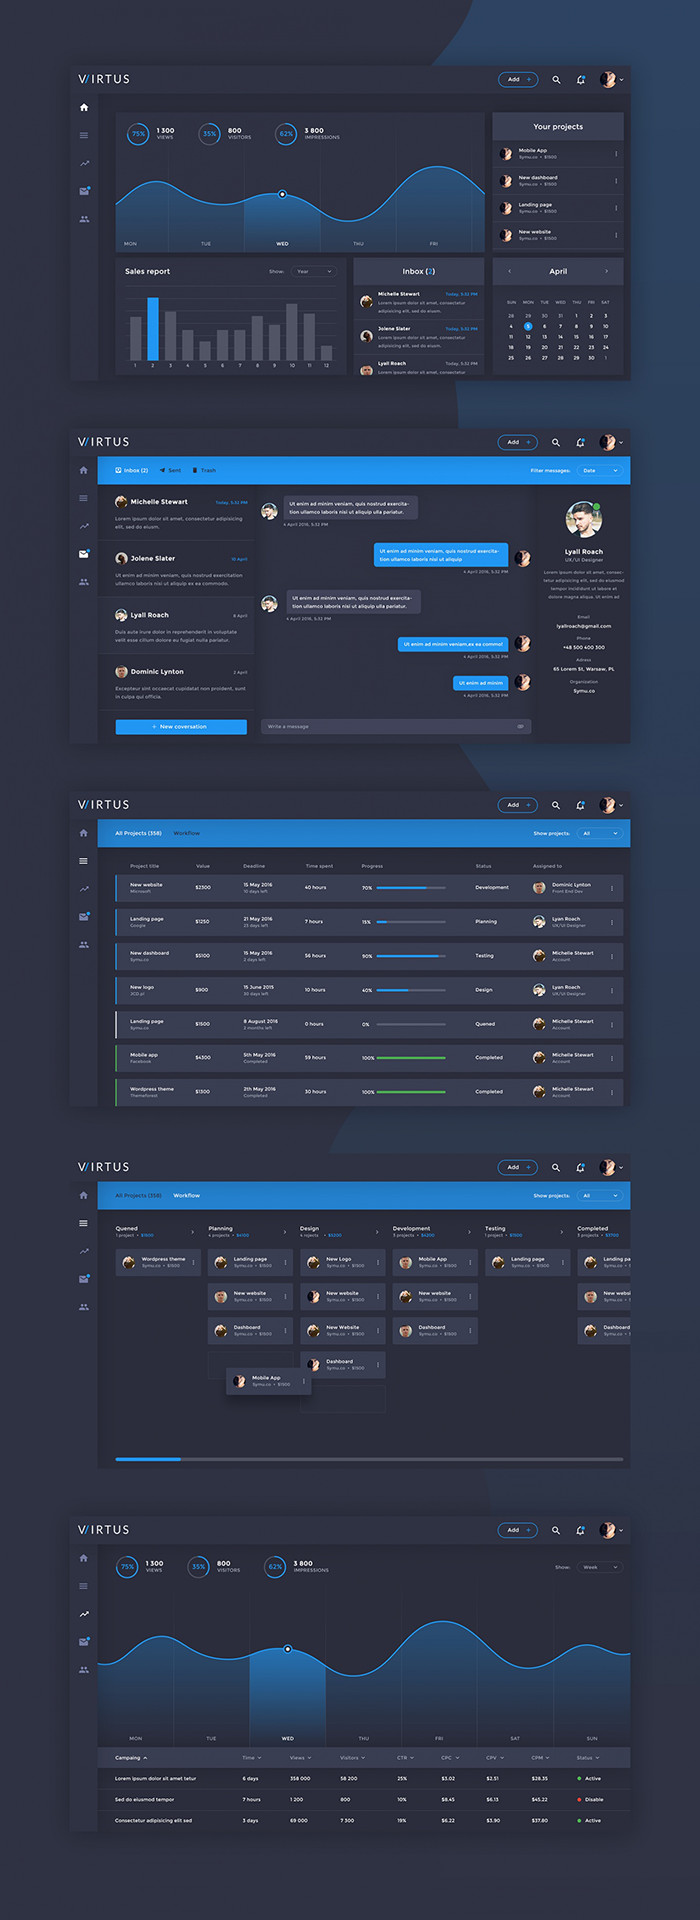 Virtue Free Admin Dashboard PSD UI Kit1